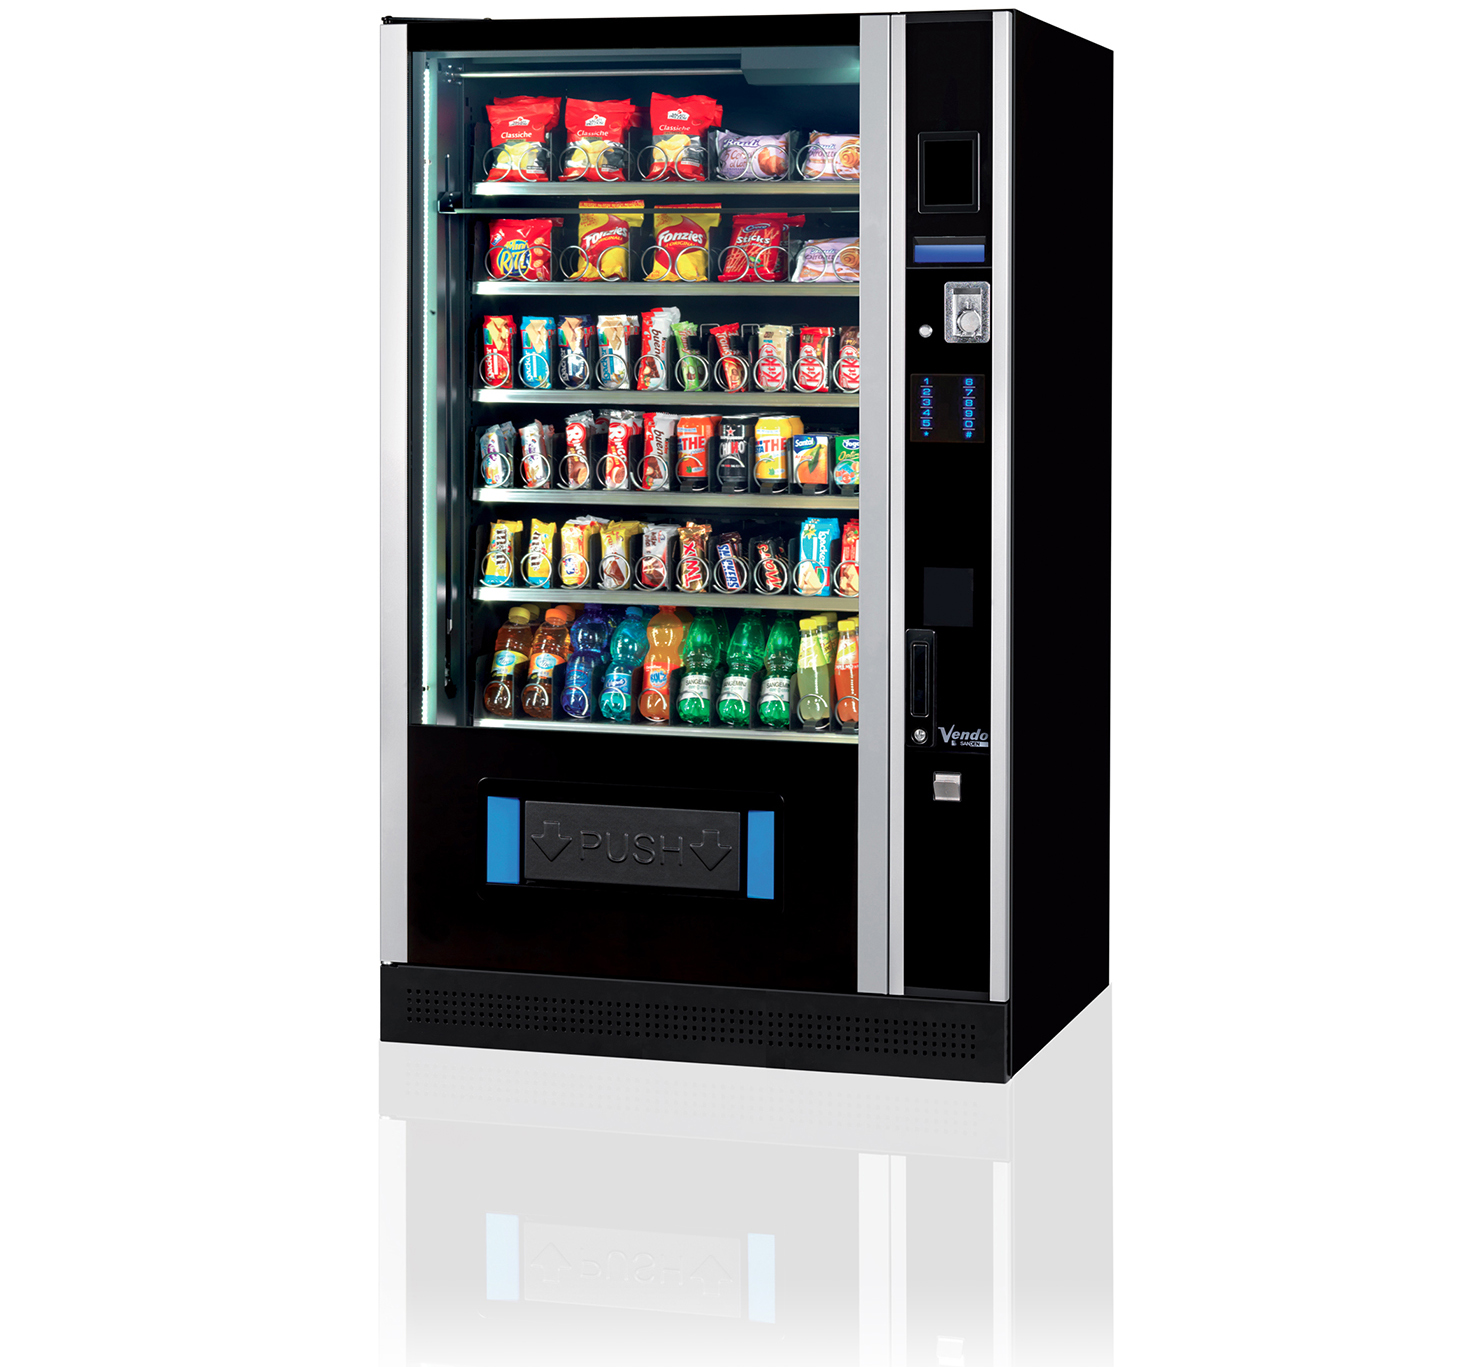 Beverage vending machines for your business offering all kinds of drinks